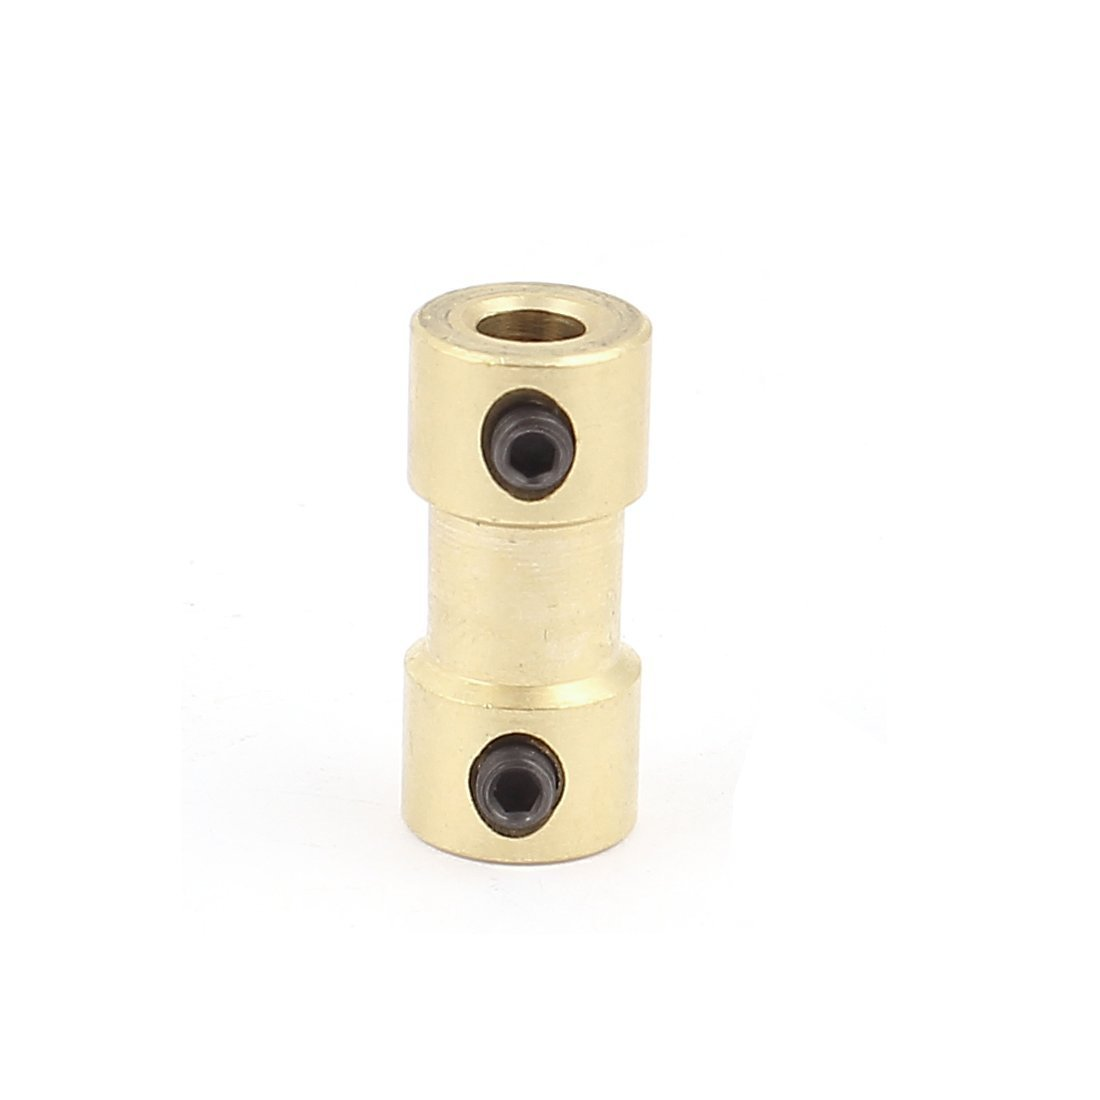 sourcingmap 4mm to 4mm Copper DIY Motor Shaft Coupling Joint Connector for Electric Car Toy a15113000ux1258